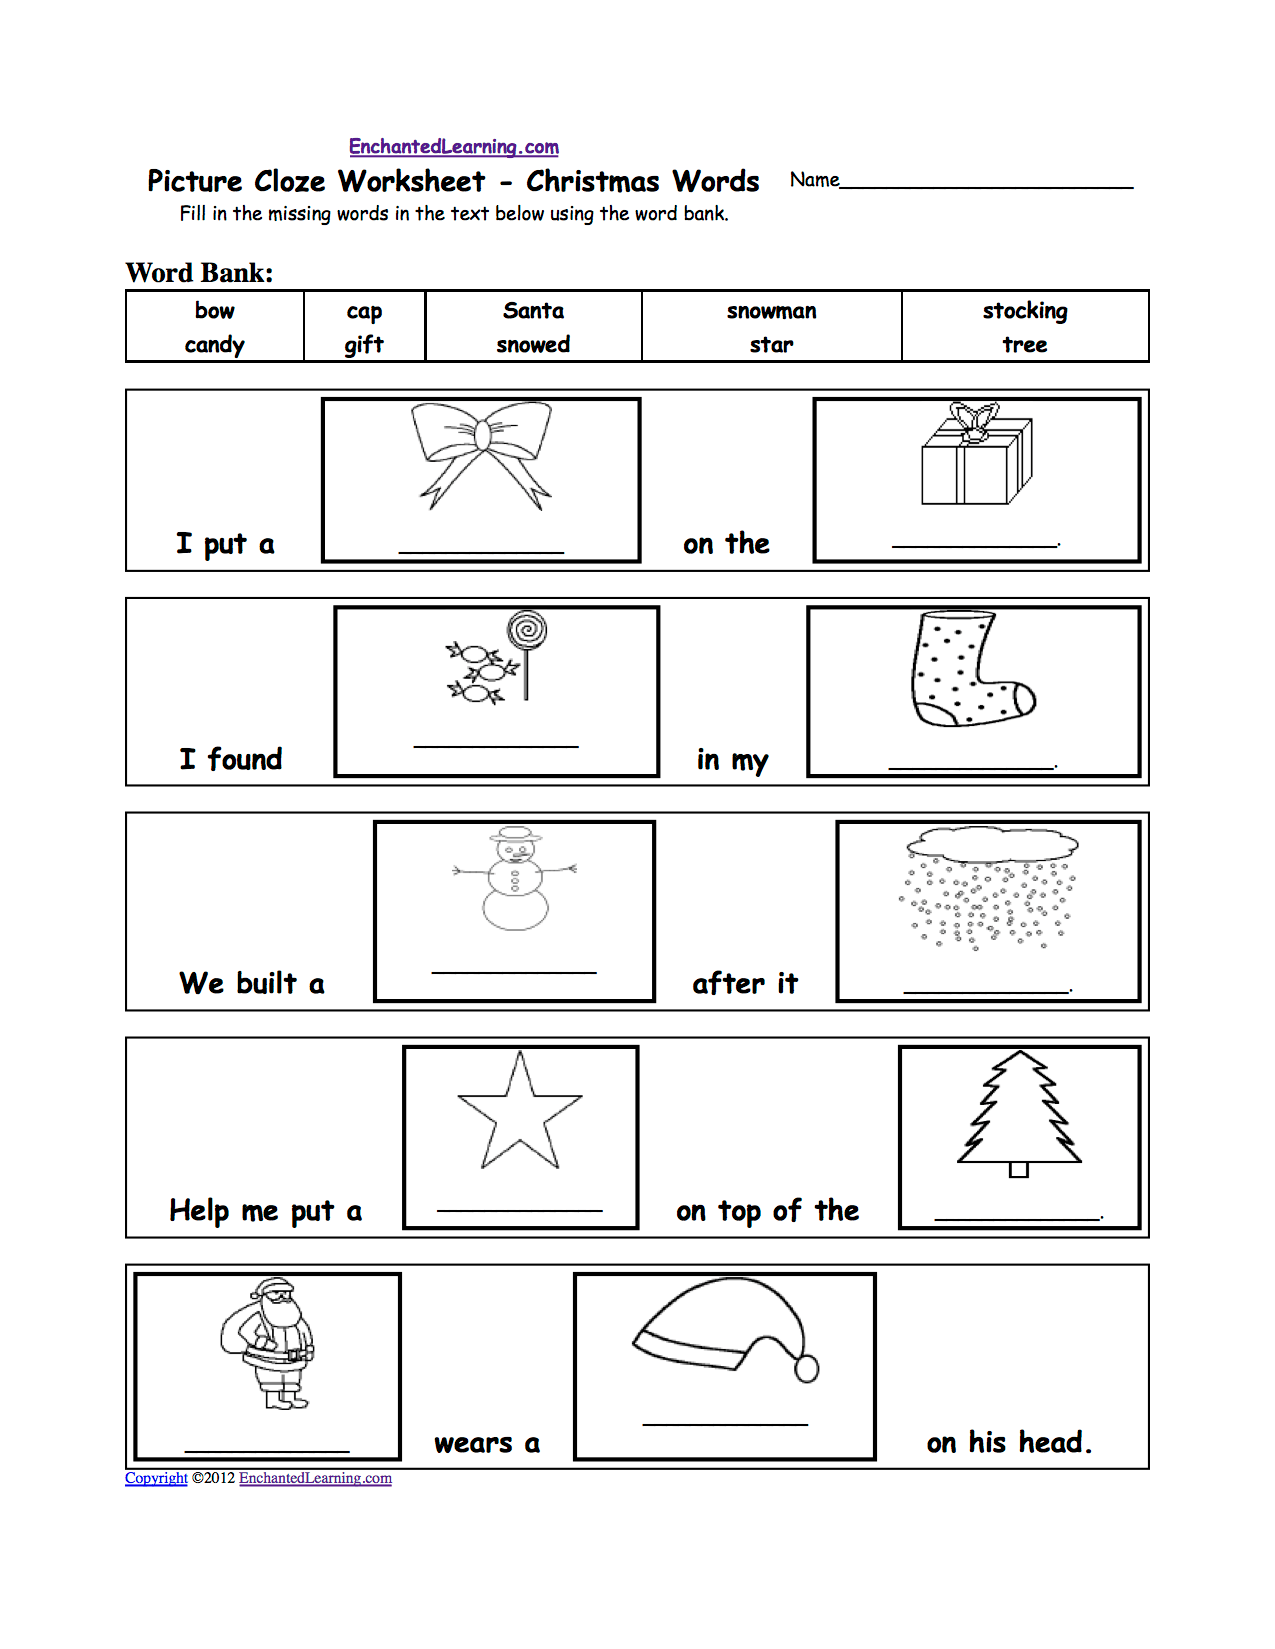 Picture Cloze Worksheets